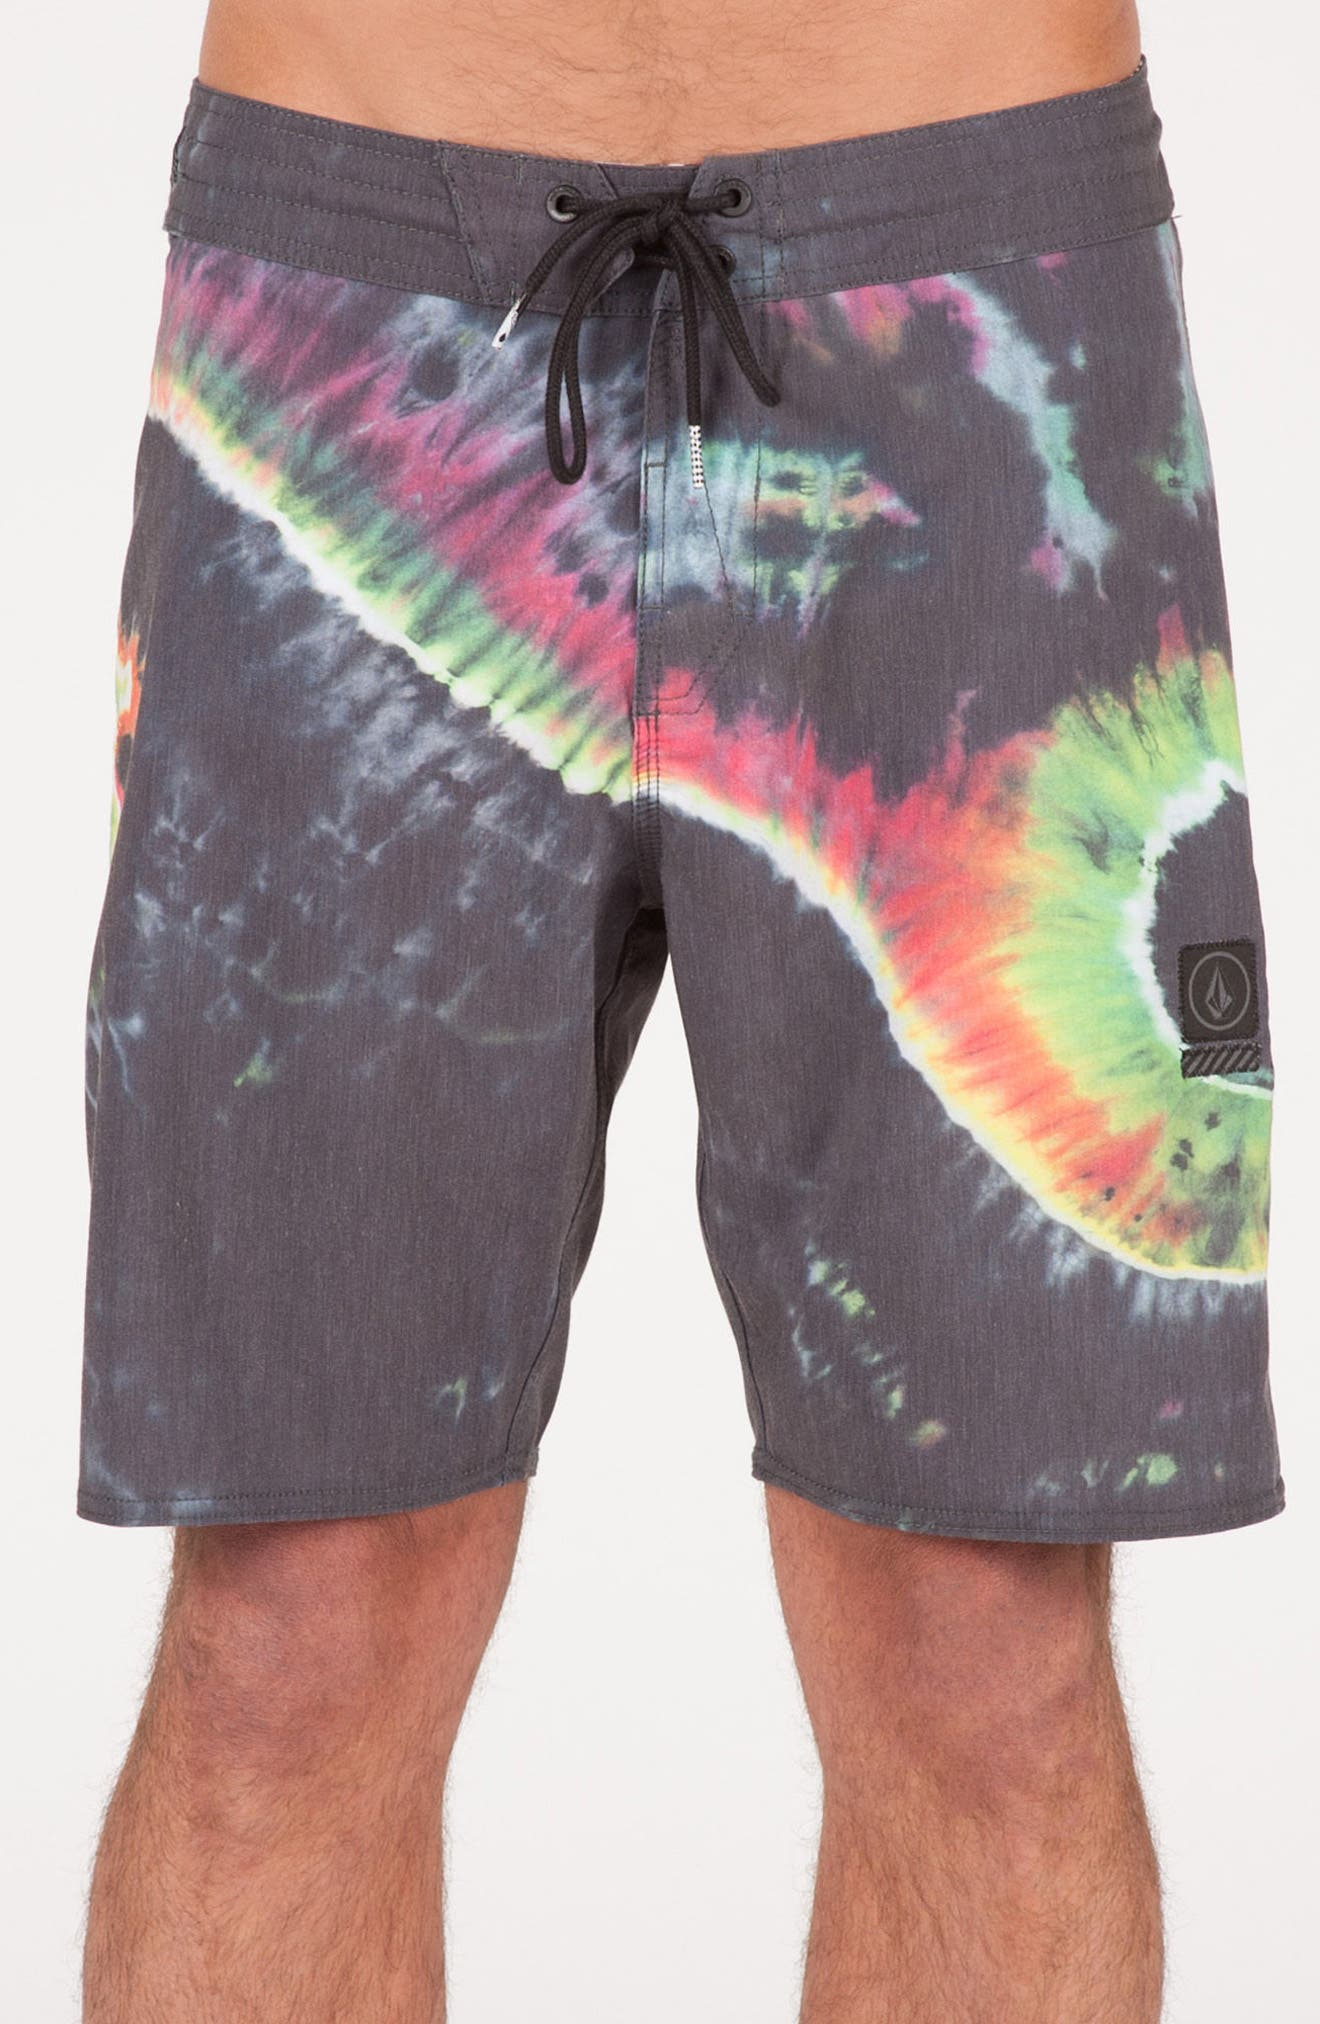 Yin Yang Slinger Board Shorts,                         Main,                         color, 002